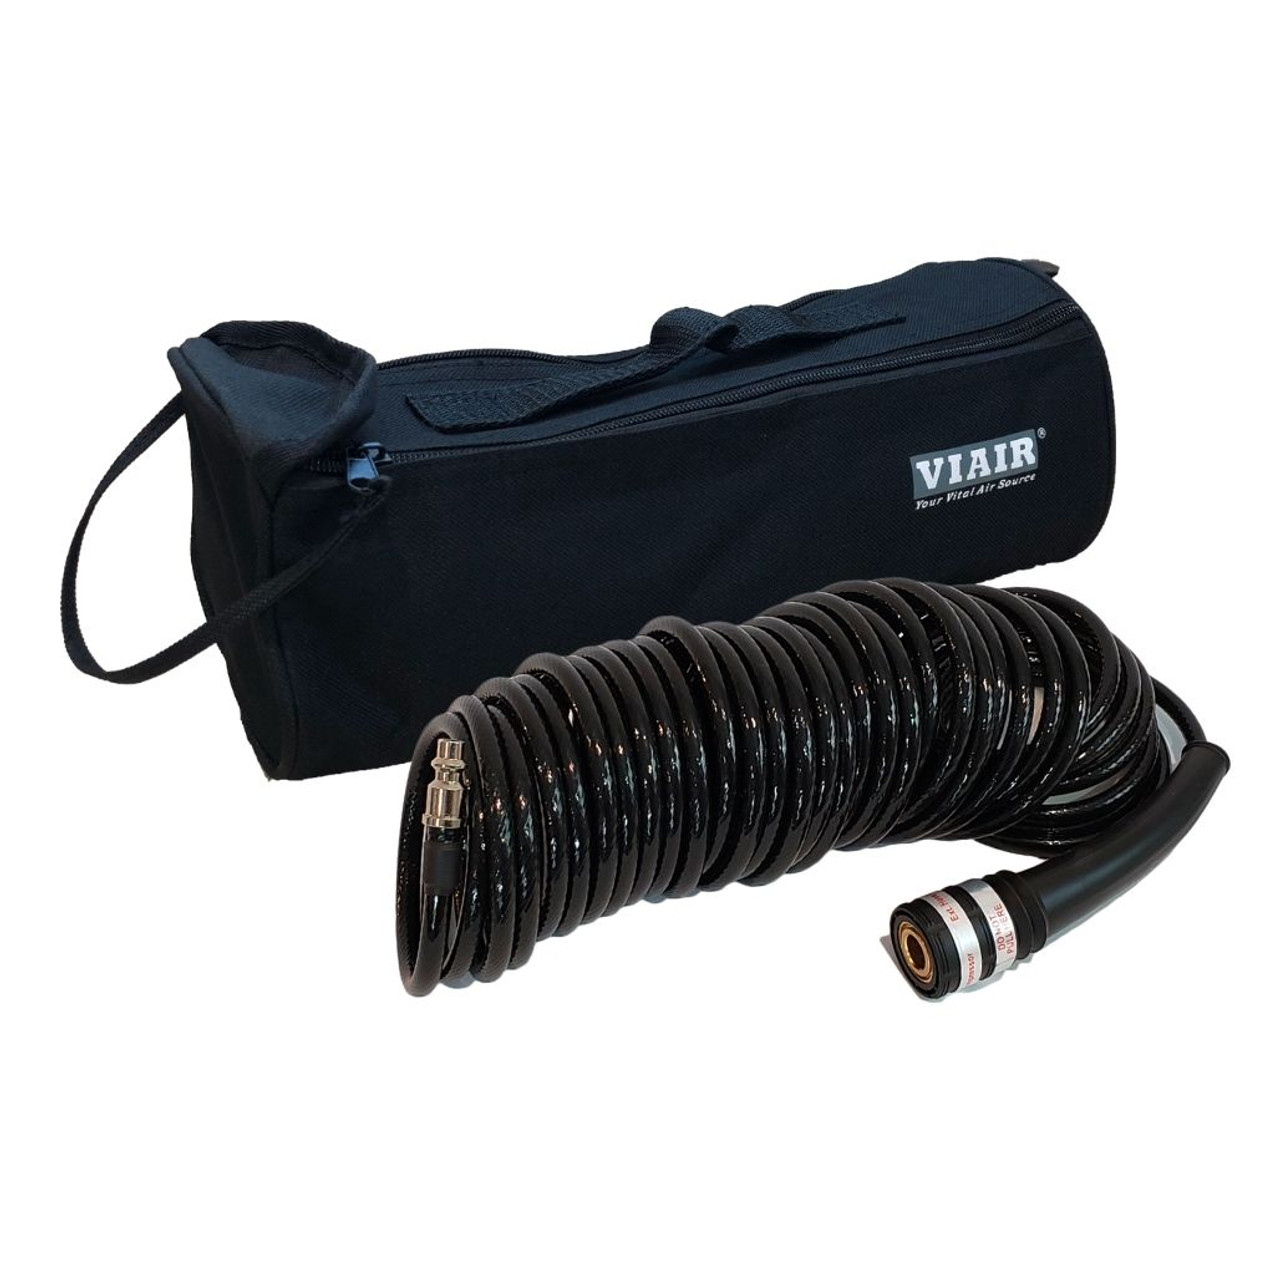 VIAIR 30 Foot Extension Air Hose